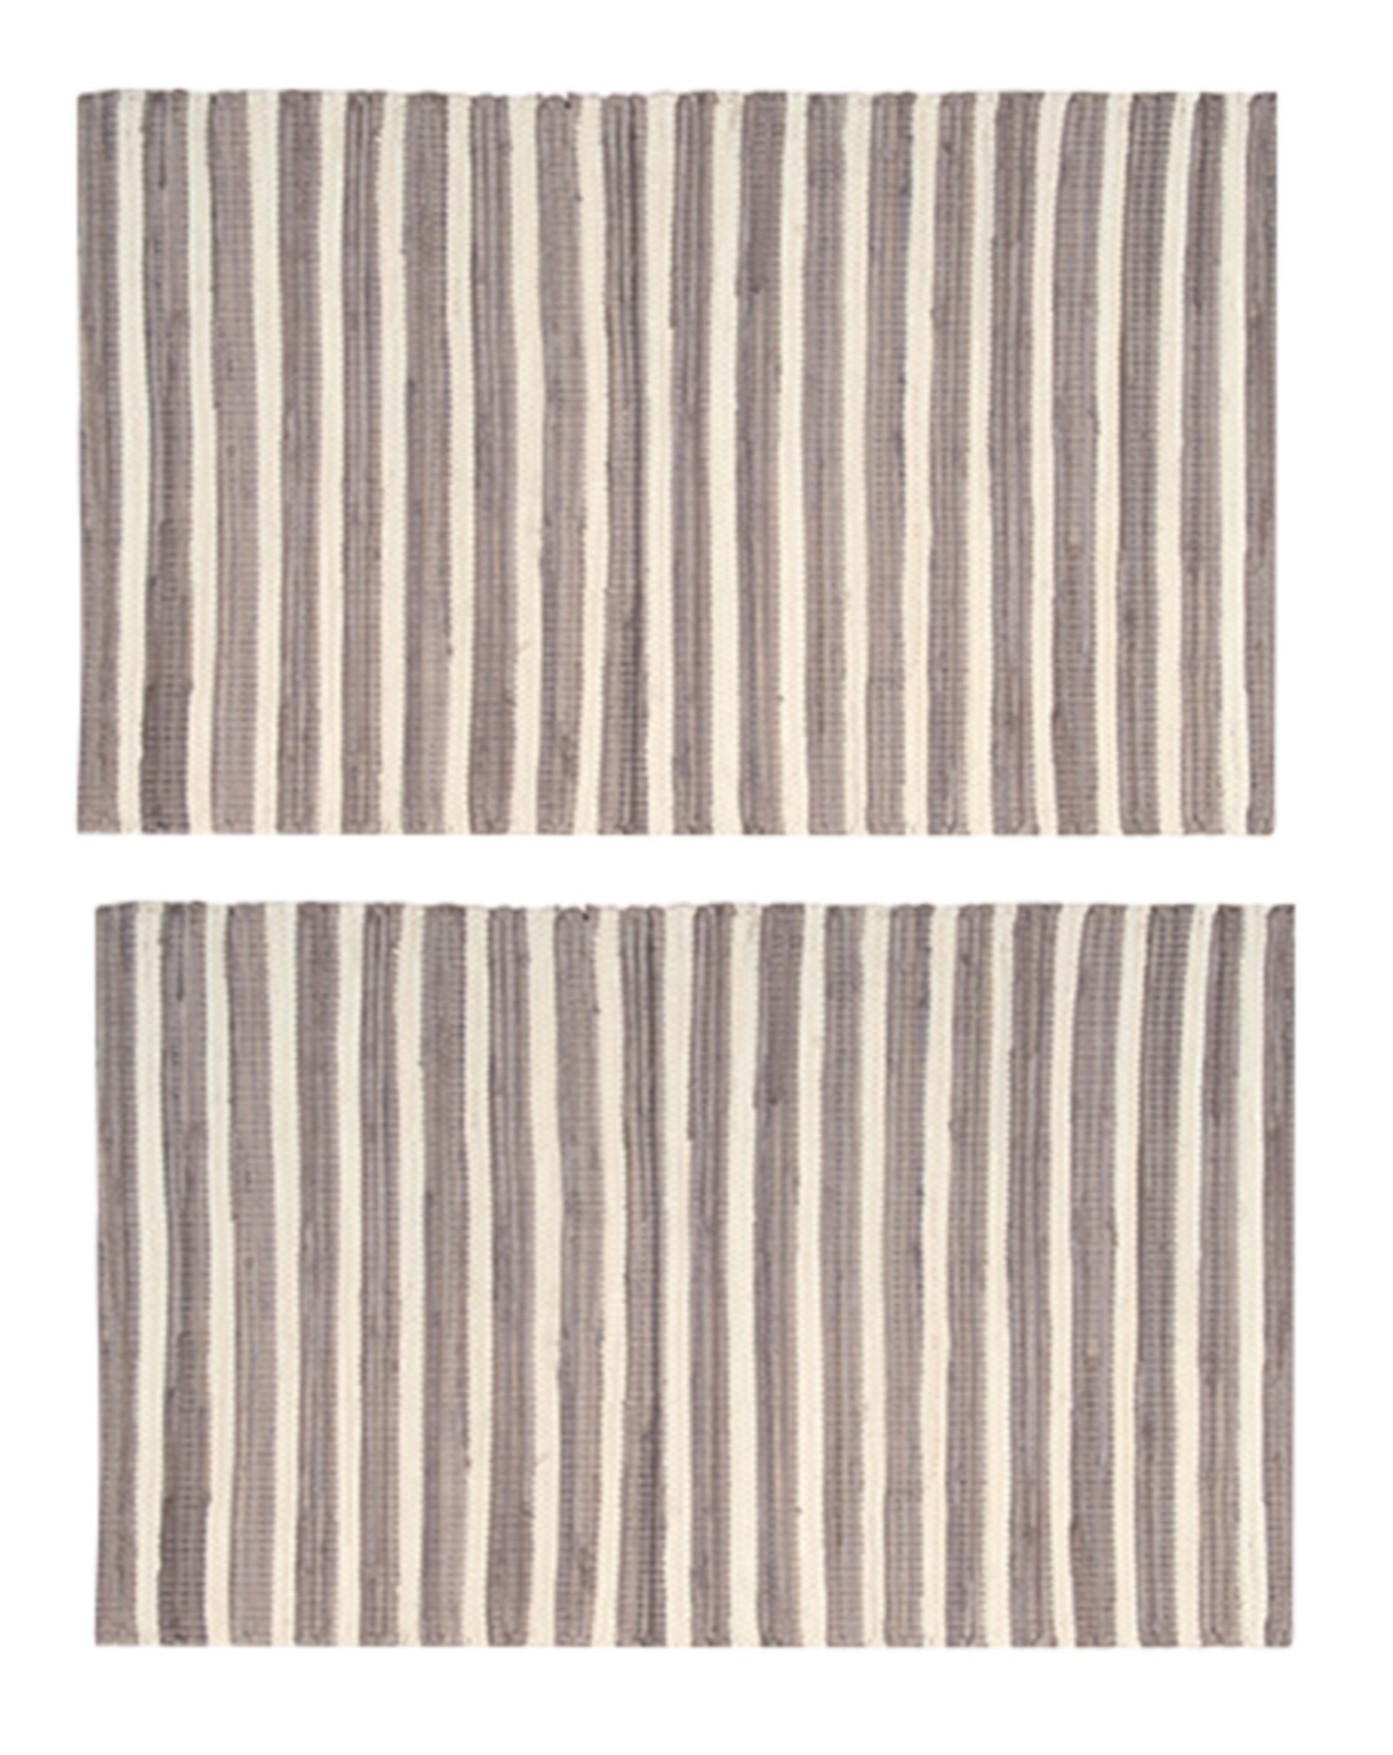 2-PACK-Nourison-Brunswick-Stripe-Accent-Floor-Area-Rugs-24-034-x-36-034-or-30-034-x-48-034 thumbnail 6